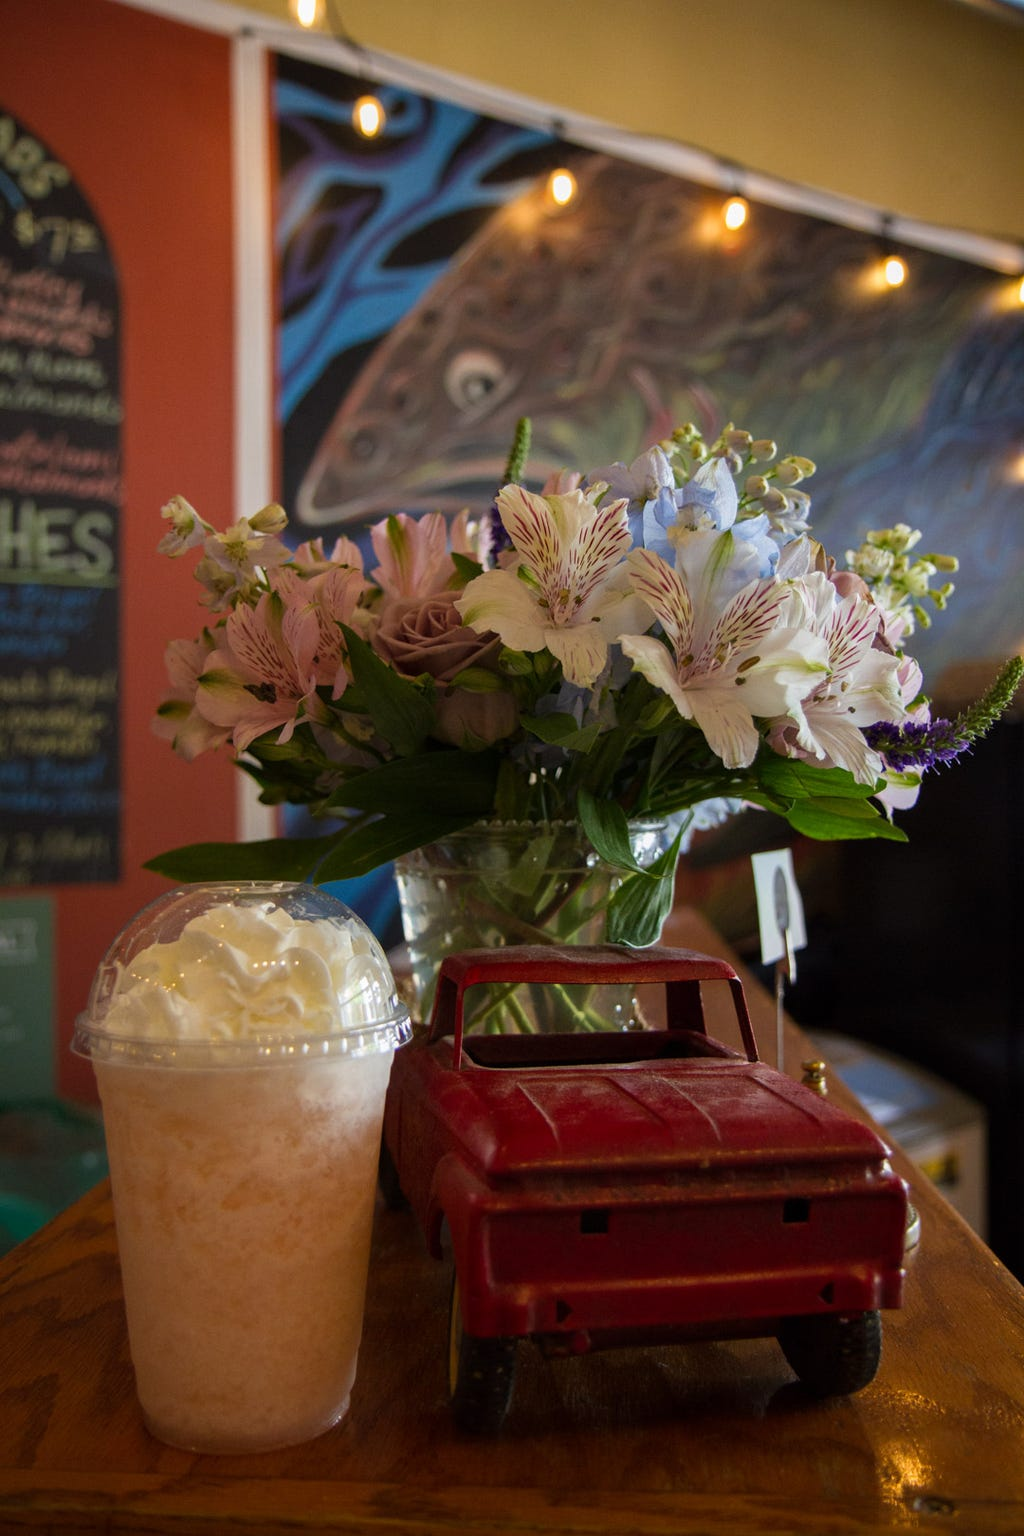 Peach italian cream soda at Rising Trout Cafe